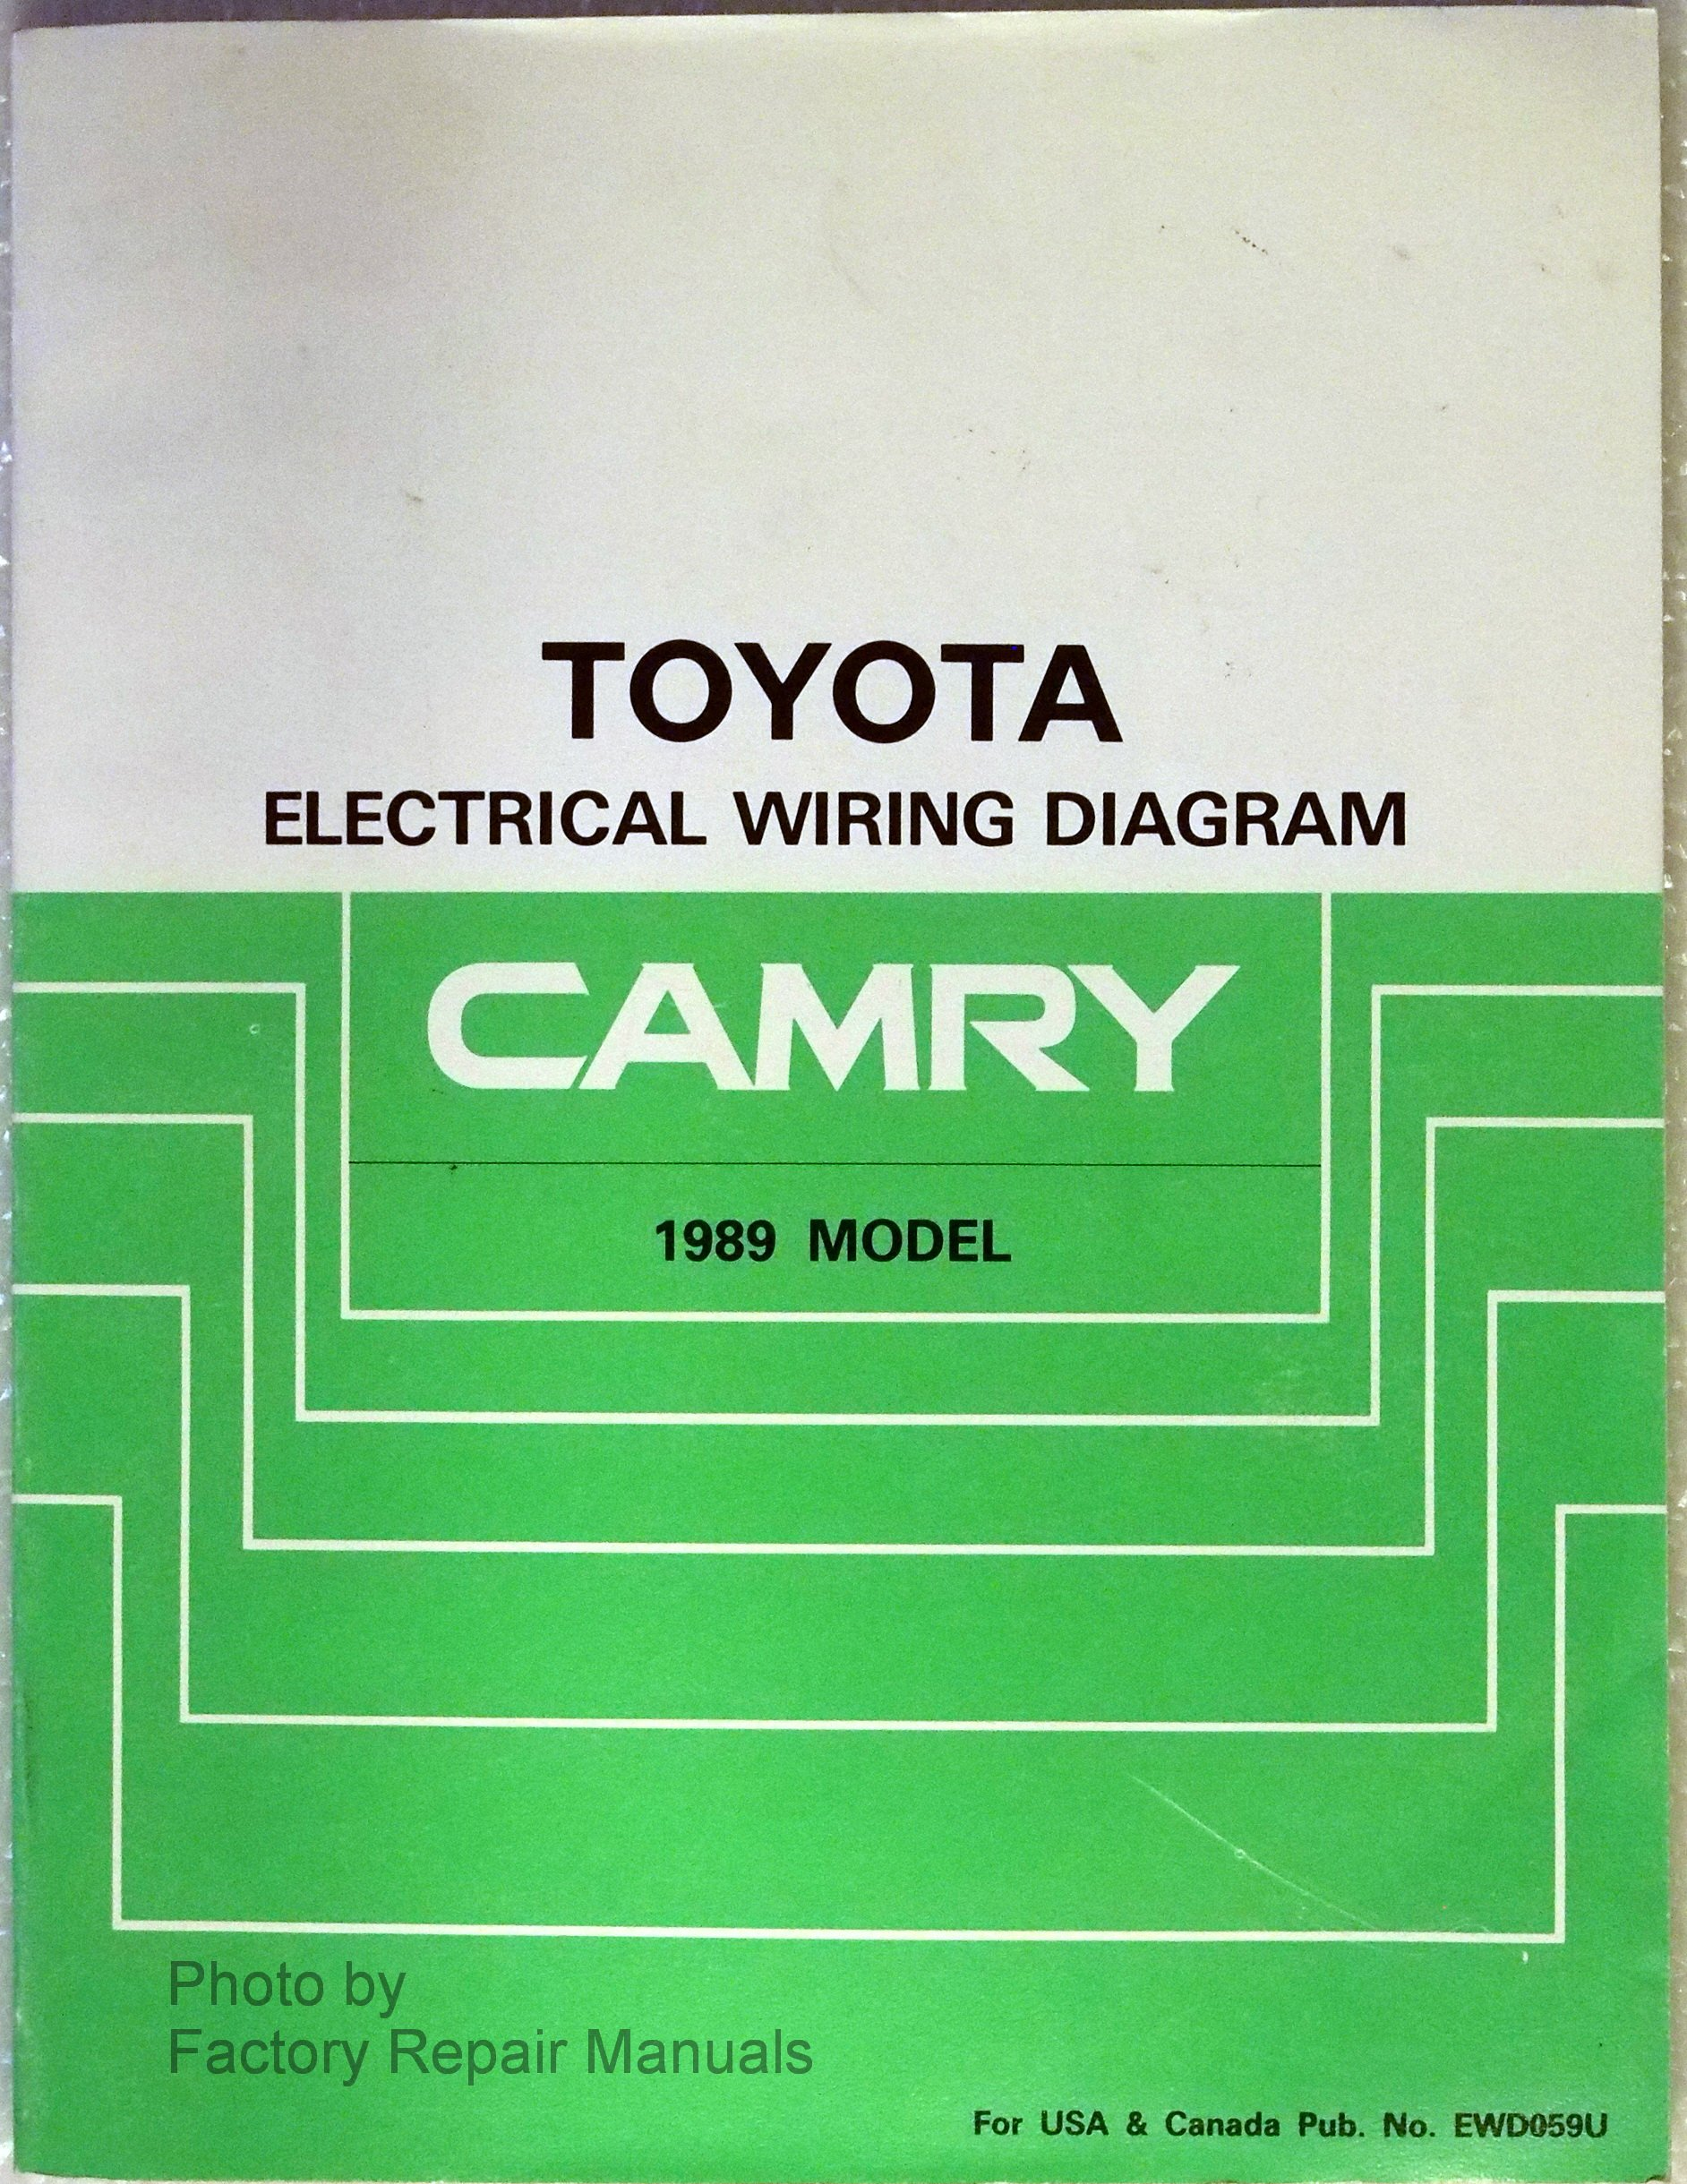 1989 Toyota Camry Electrical Wiring Diagram Manual Toyota Electrical Wiring Diagram Camry 1989 Model Amazon Com Books